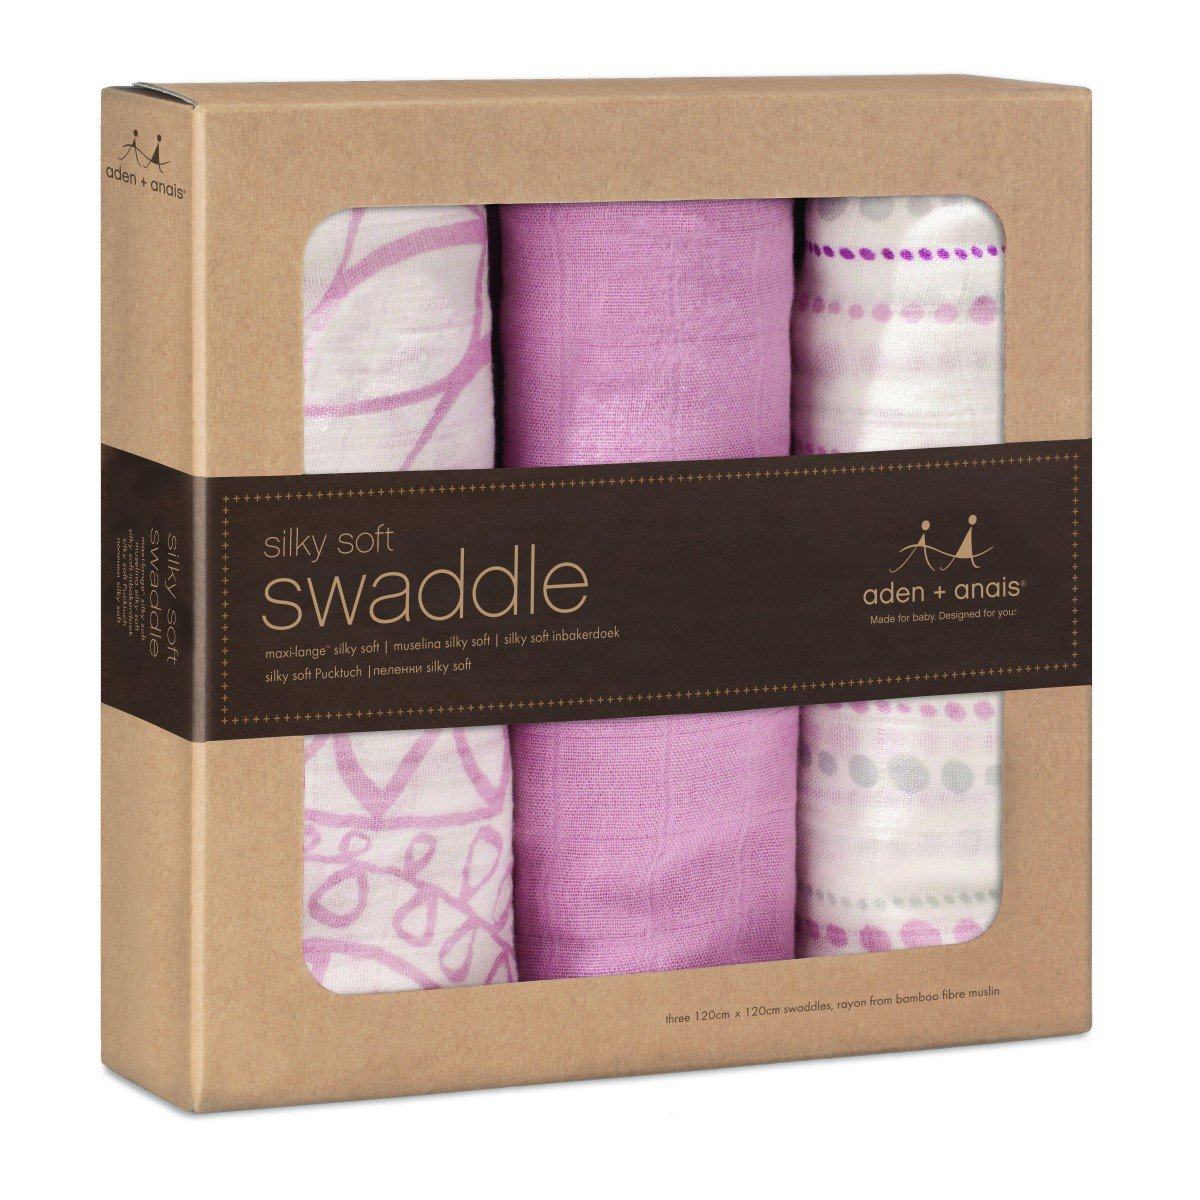 aden + anais silky soft swaddle, 100% viscose made from bamboo, 120cm X 120cm, 3 pack, tranquility 9204G